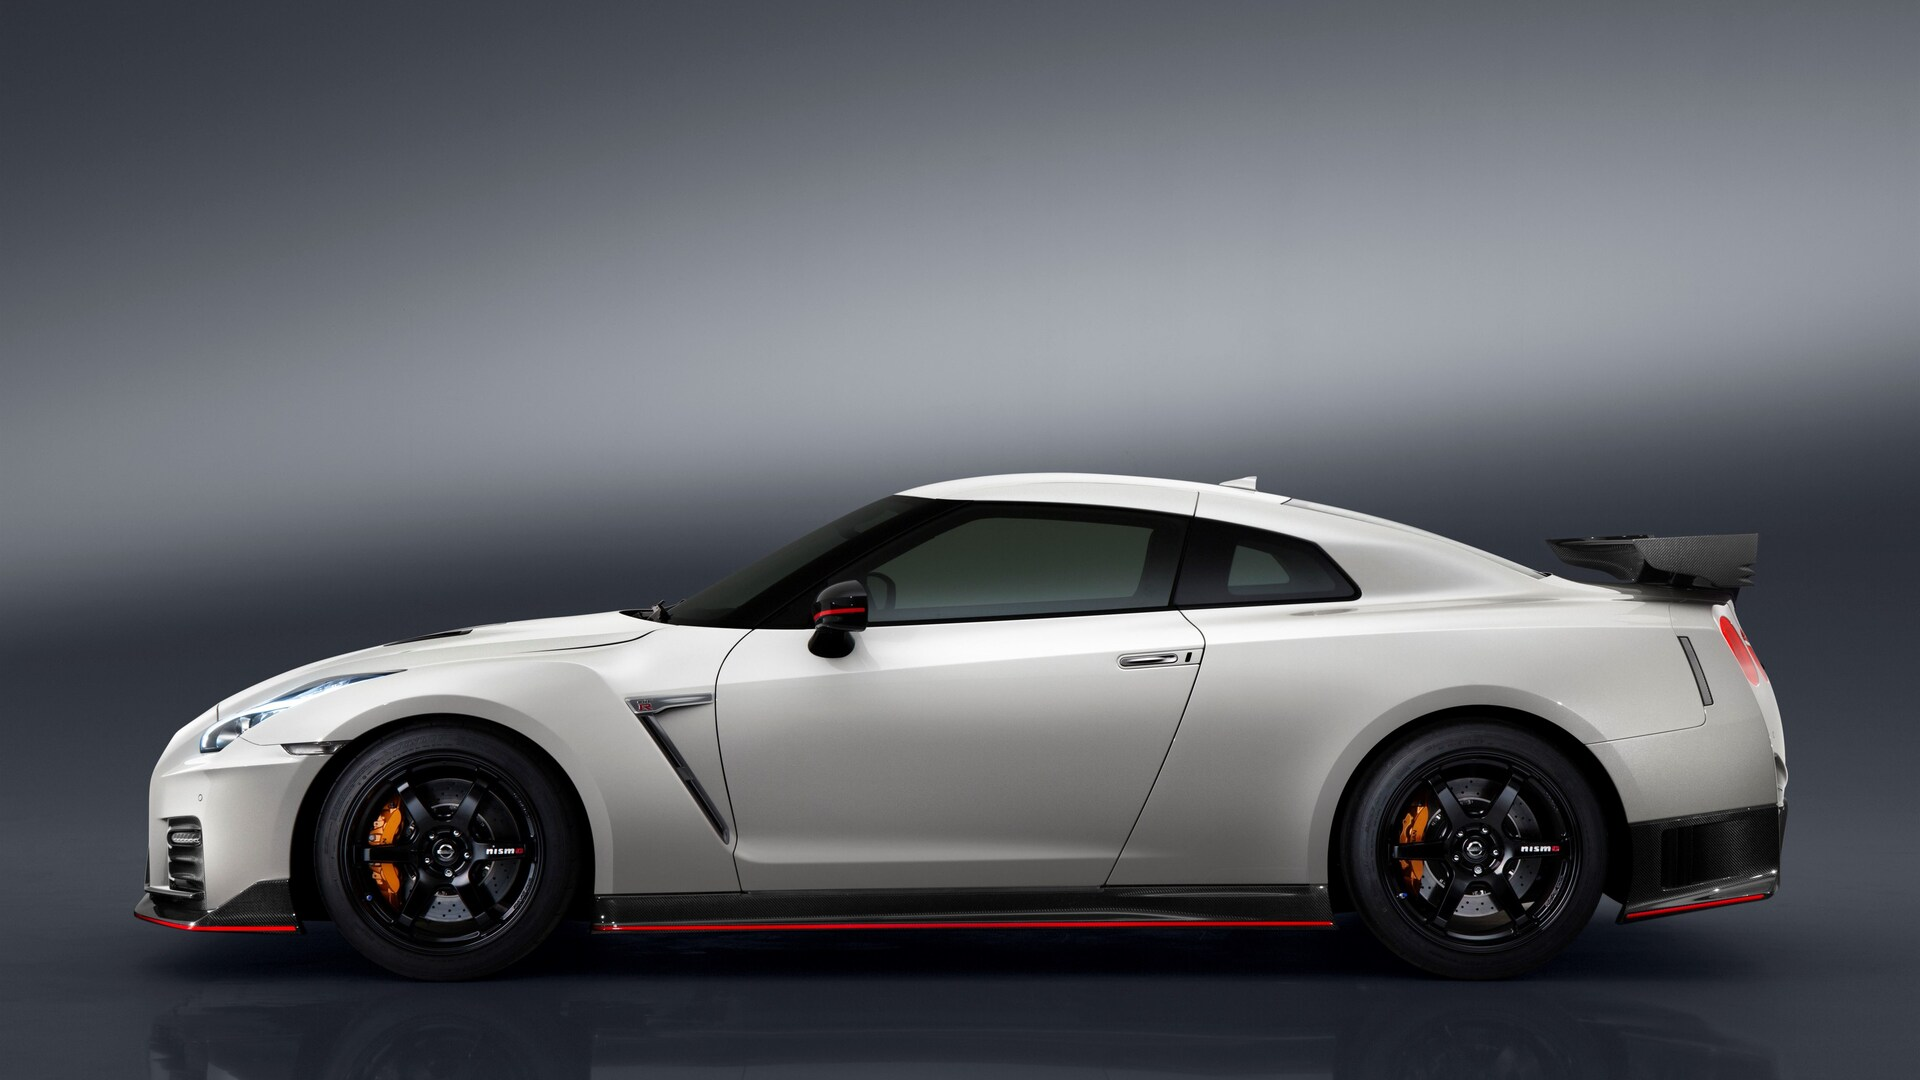 Nissan Gt R 2017 Us Wallpapers And Hd Images: 1920x1080 2017 Nissan GT R Nismo Laptop Full HD 1080P HD